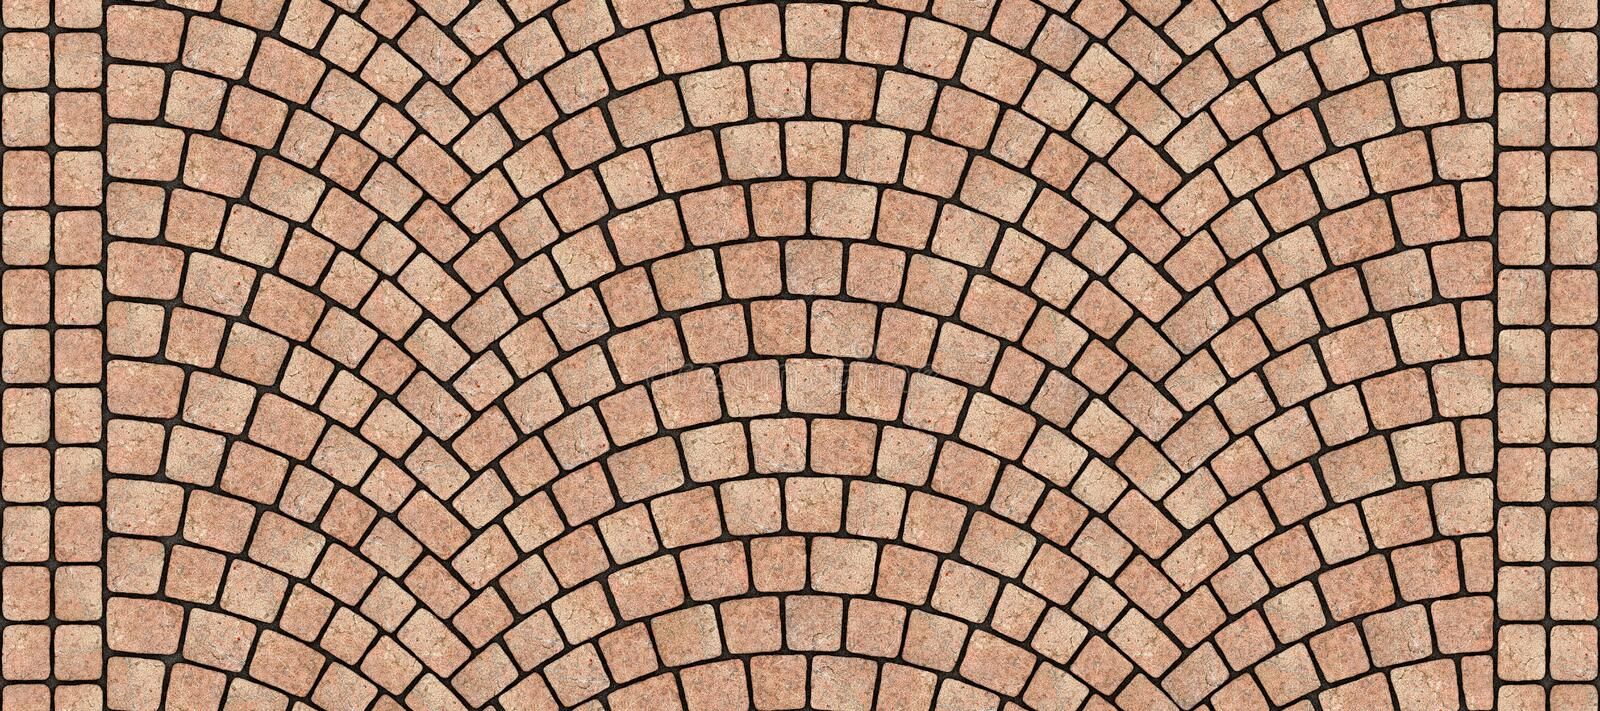 Road curved cobblestone texture 126. Cobblestone arched pavement road with edge courses at the sidewalk. Seamless tileable repeating 3D rendering texture vector illustration